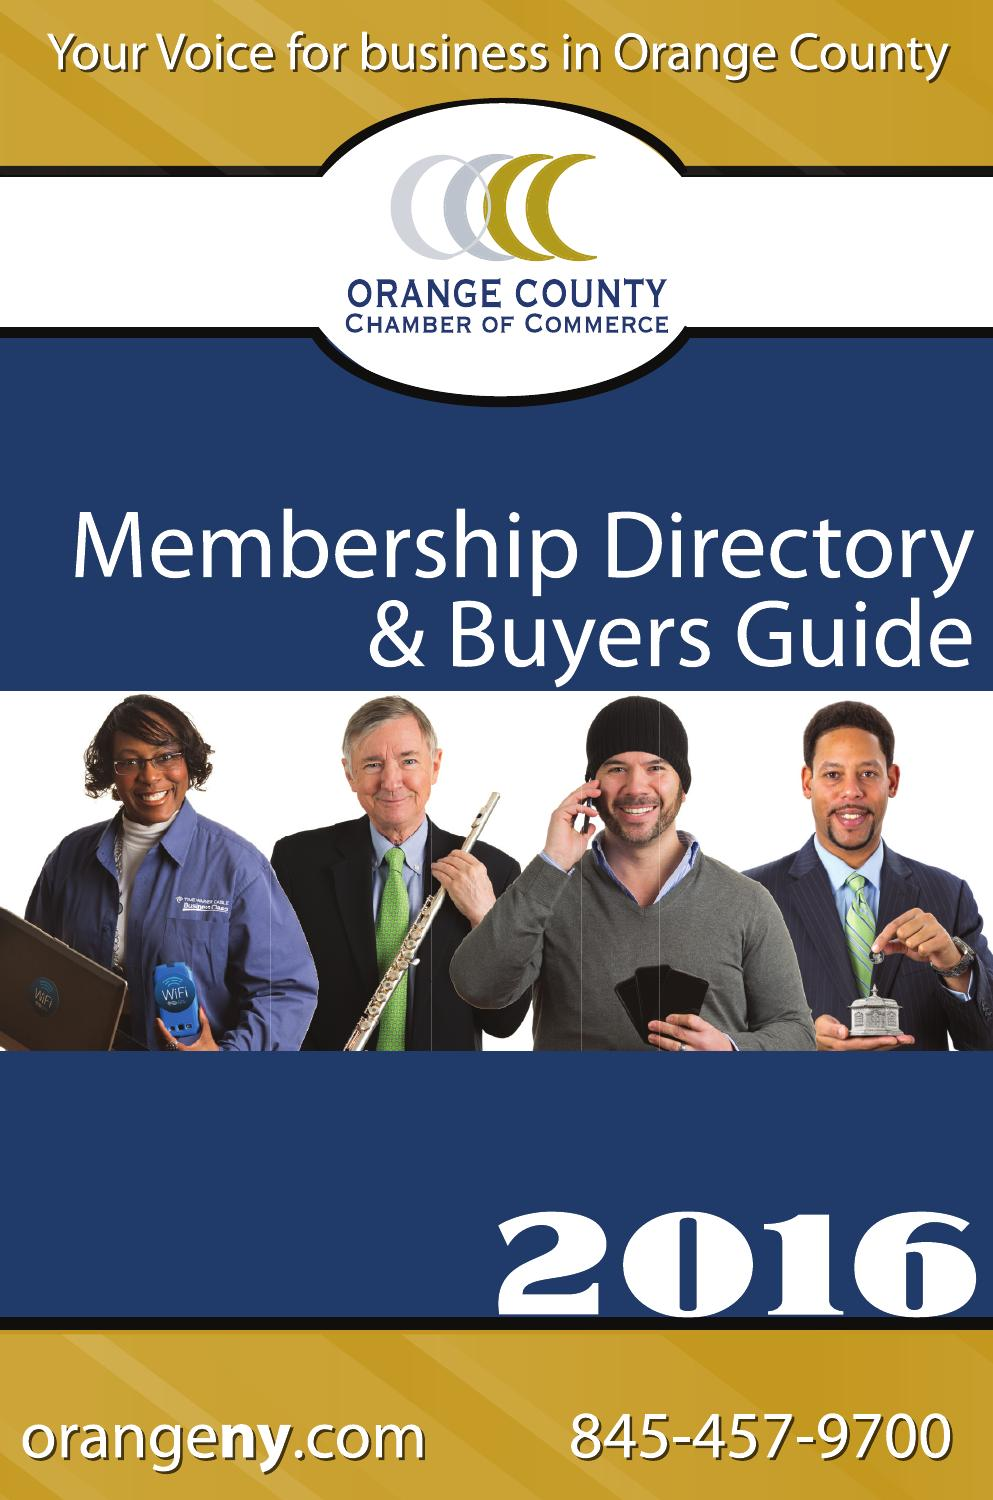 valley chamber of commerce business directory by atlantic valley chamber of commerce business directory by atlantic communications group inc issuu